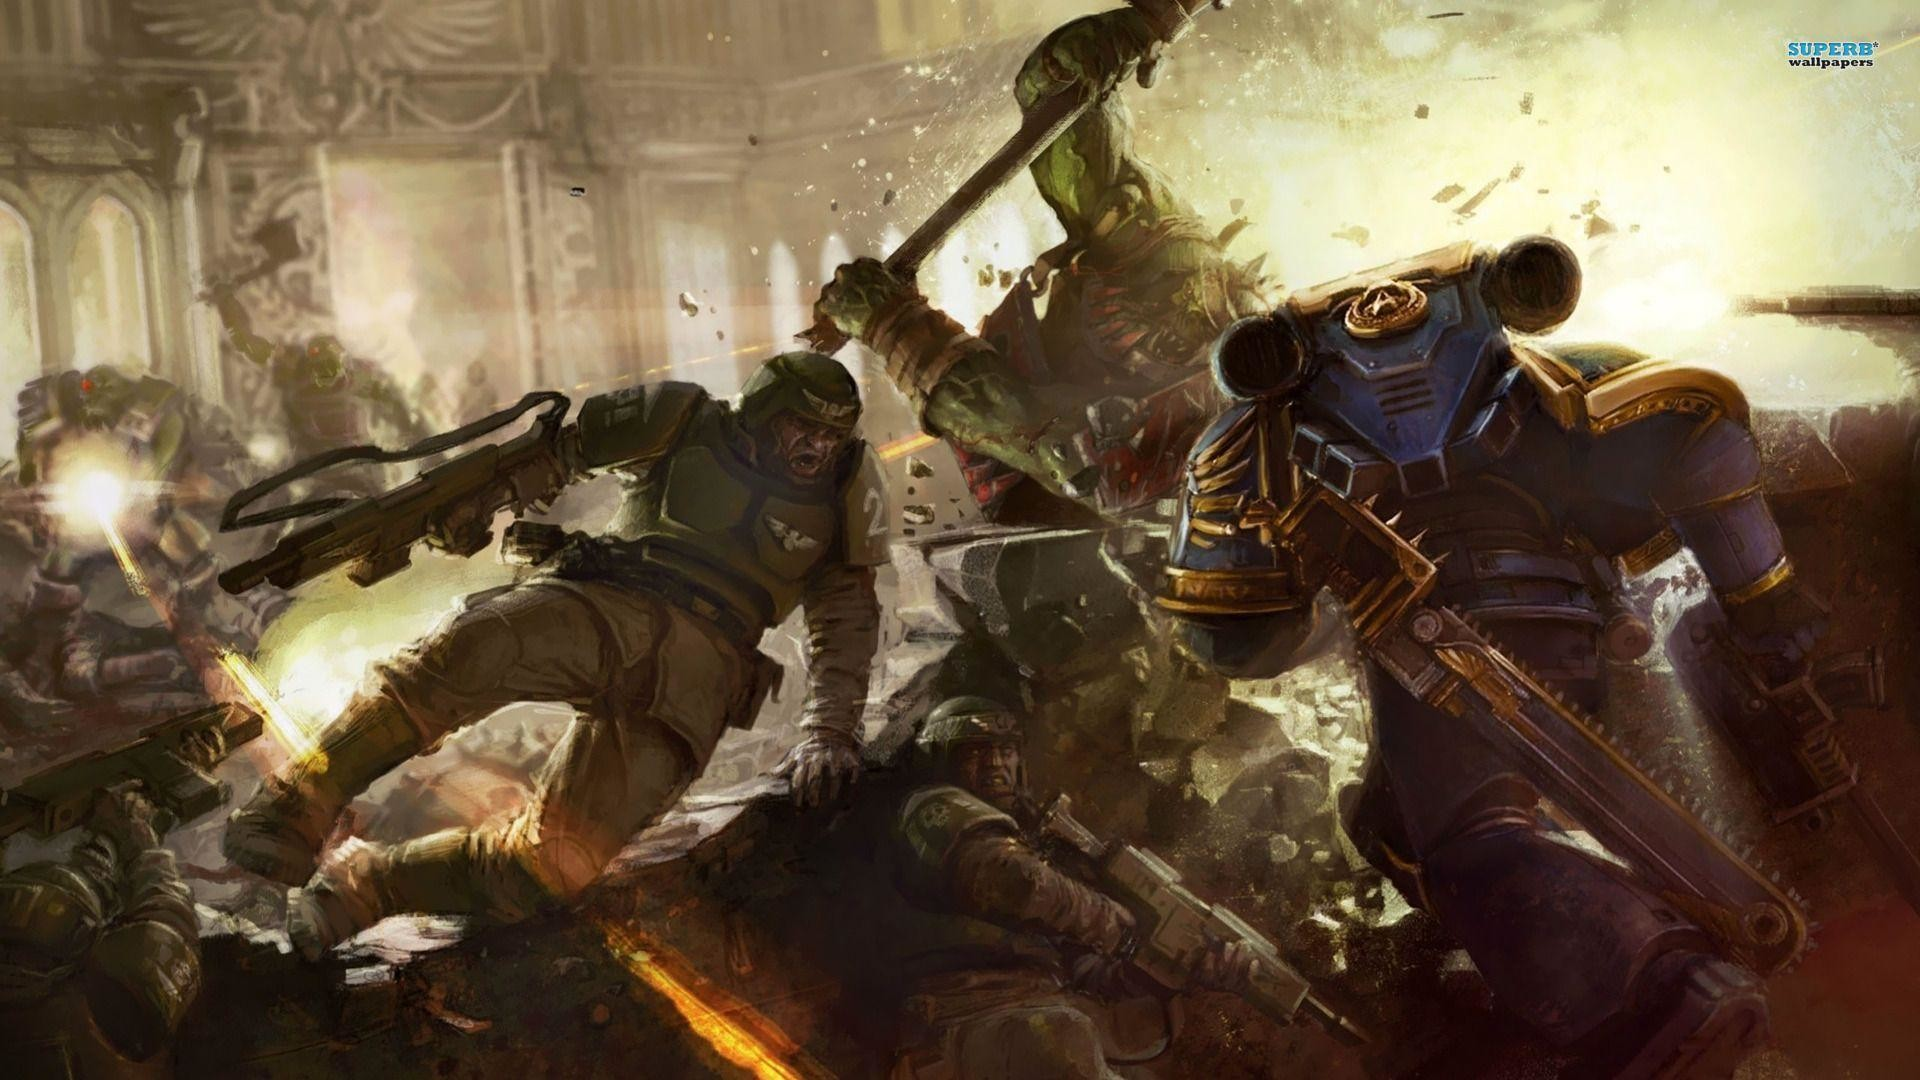 1920x1080 Warhammer 40,000: Space Marine wallpaper - Game wallpapers - #